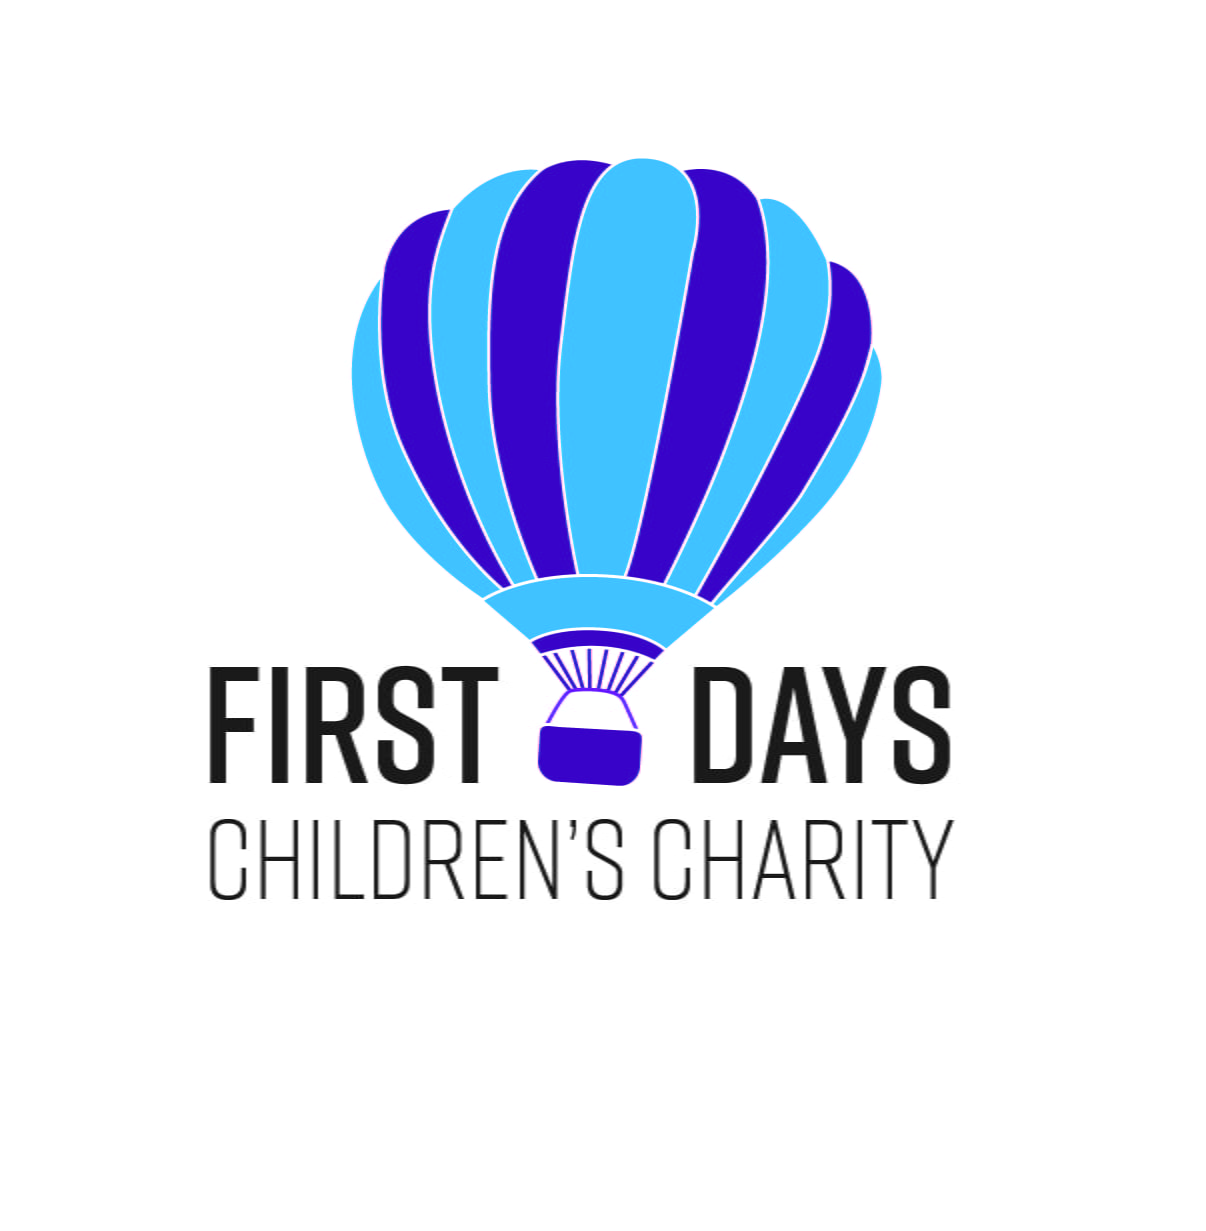 First Days charity logo